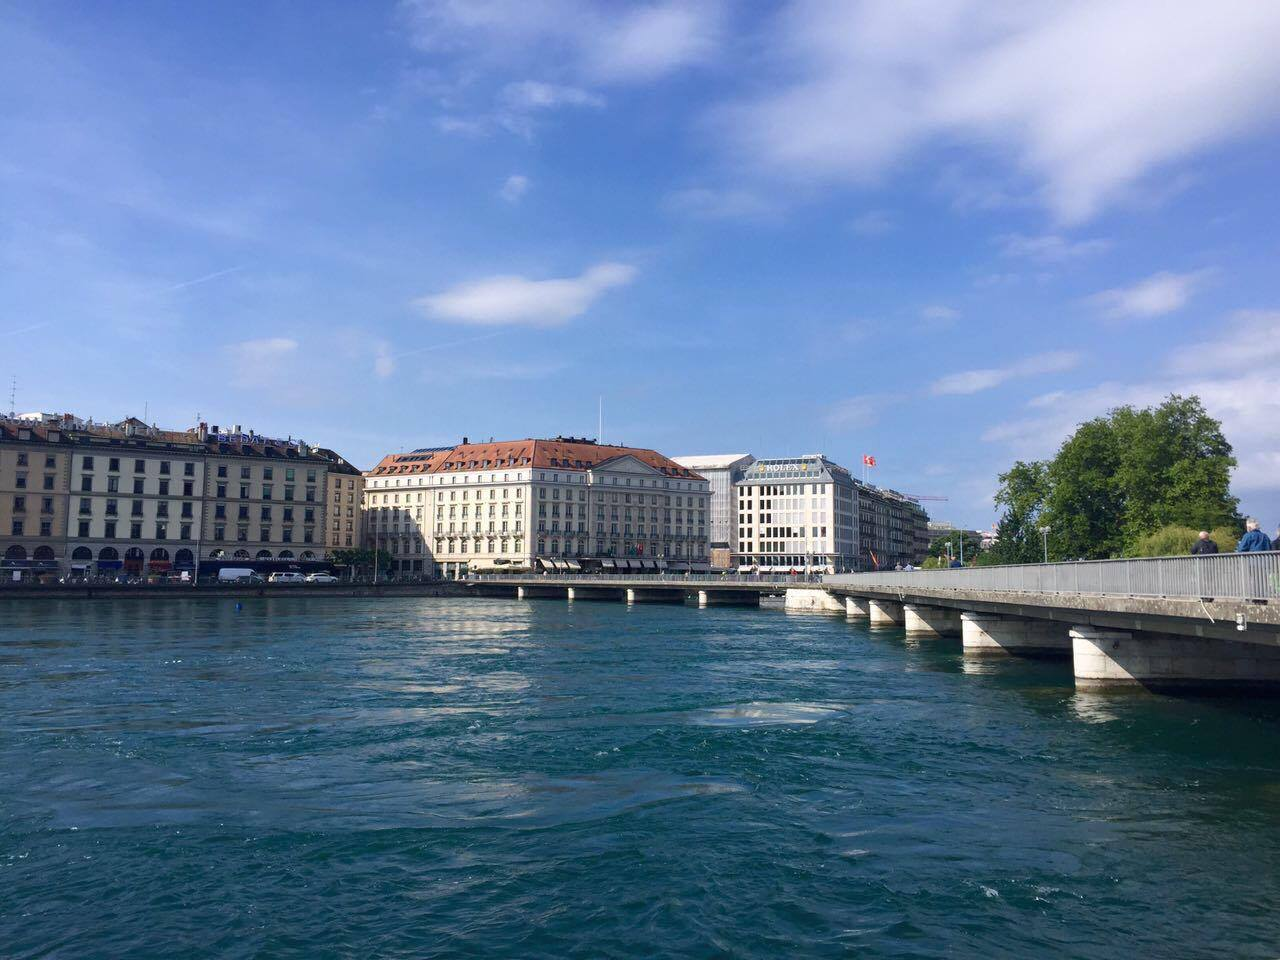 A view from the other side of Geneva.